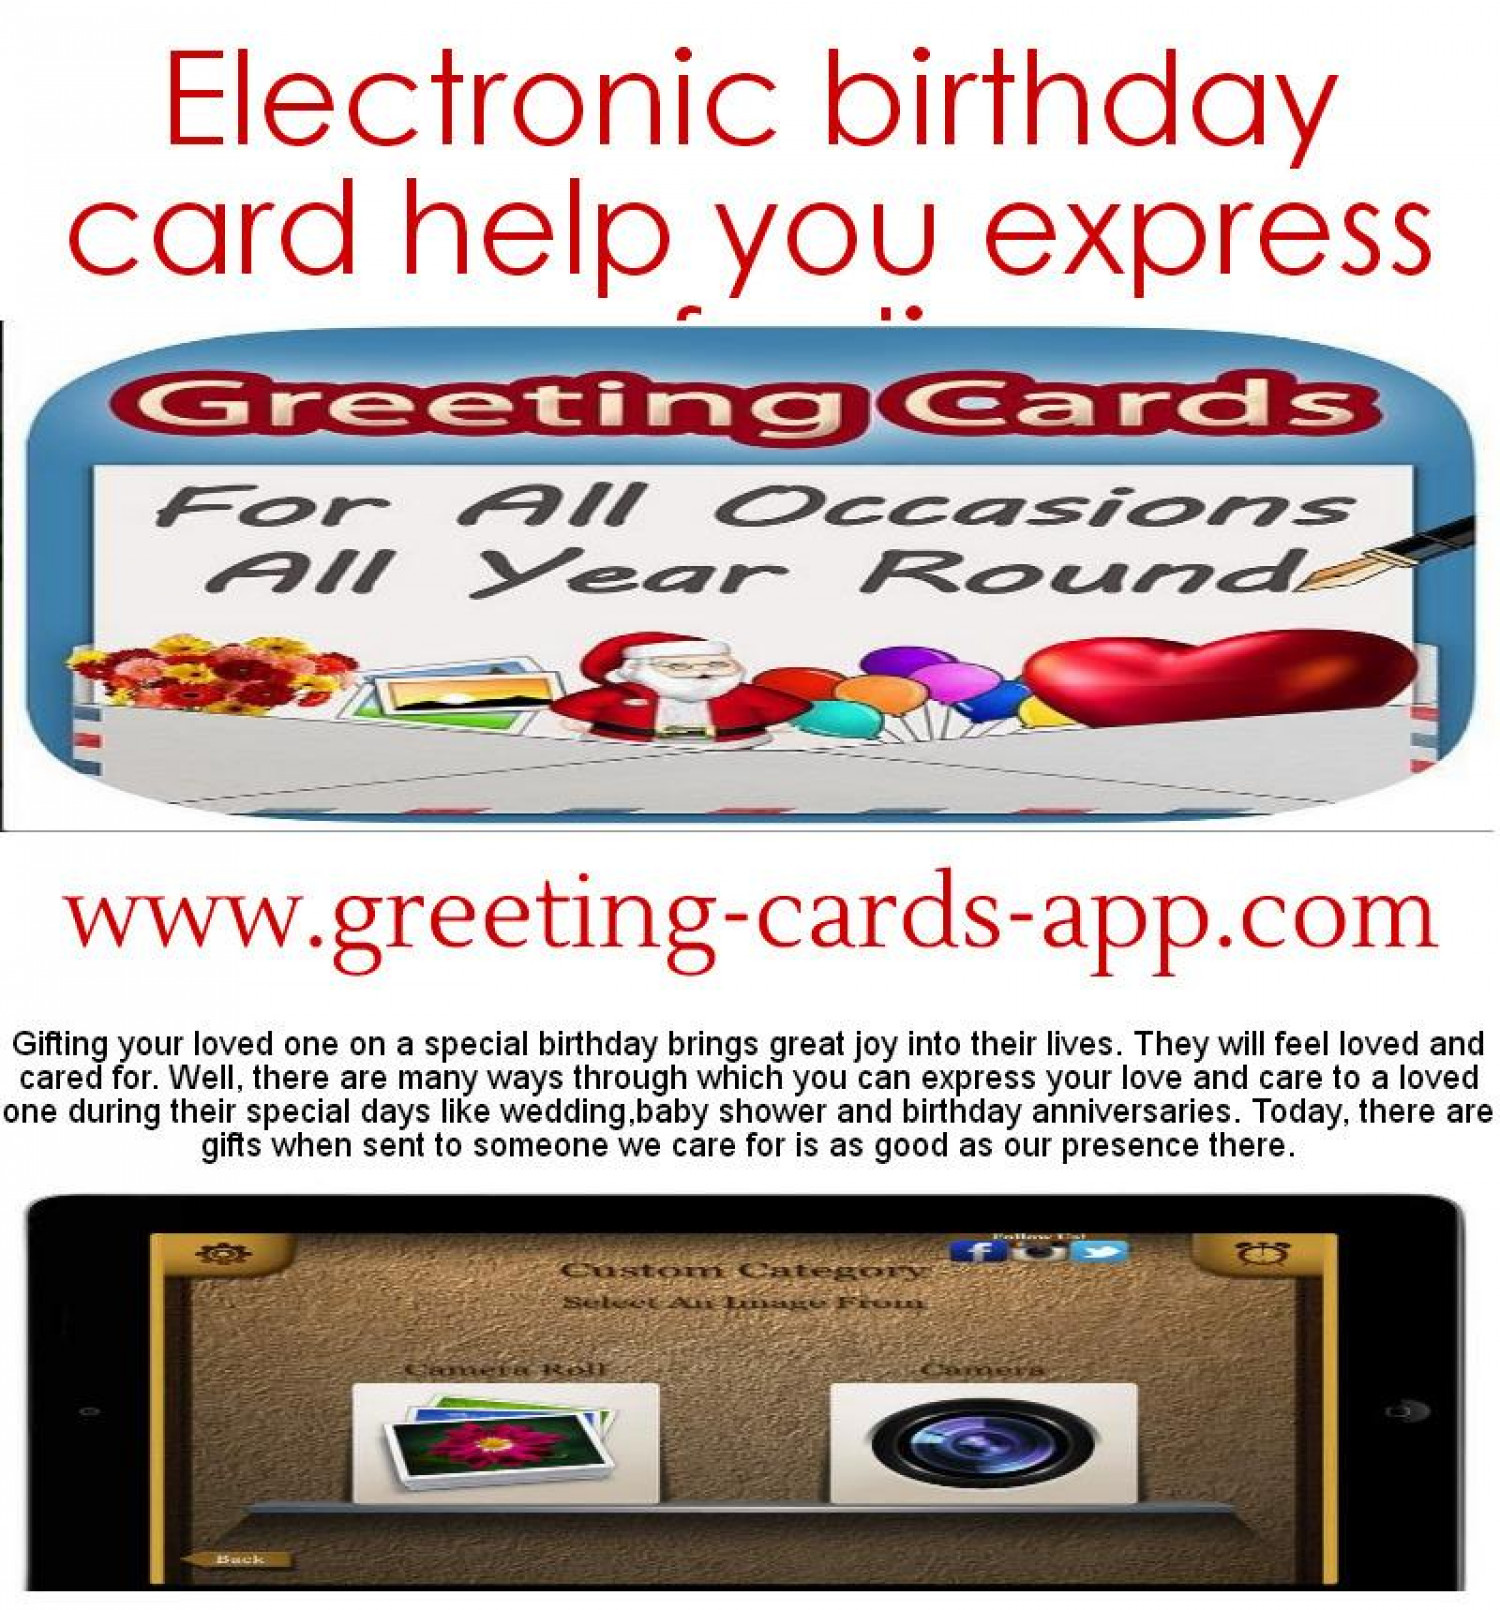 electronic birthday card help you express your feelings infographic - Electronic Birthday Cards